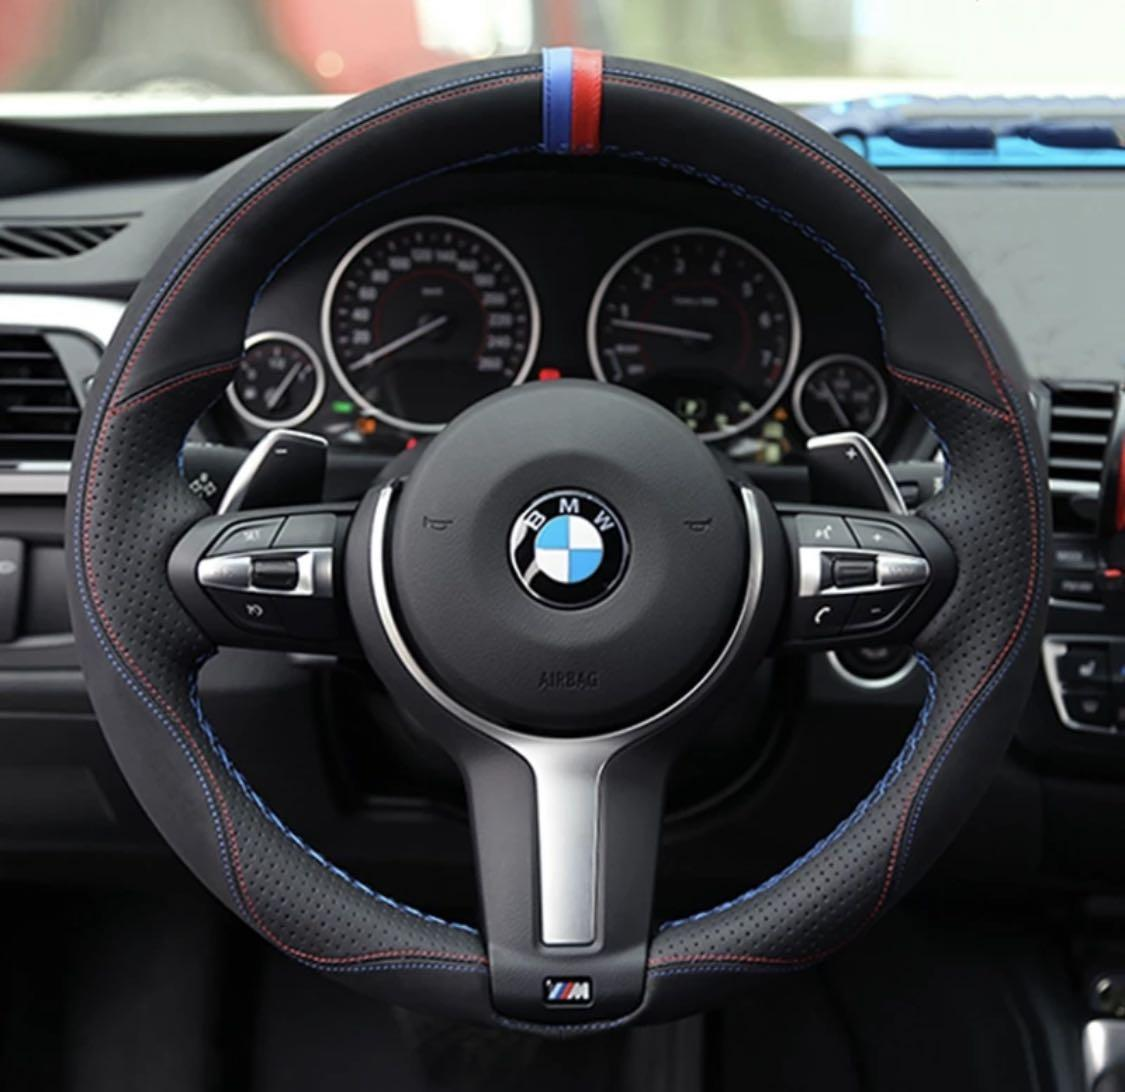 Black Genuine Leather Suede Car Steering Wheel Cover For Bmw M Sport F30 F31 F34 X1 F07 X2 F10 F11 F25 F32 F33 F36 X3 F39 F48 Car Accessories Accessories On Carousell